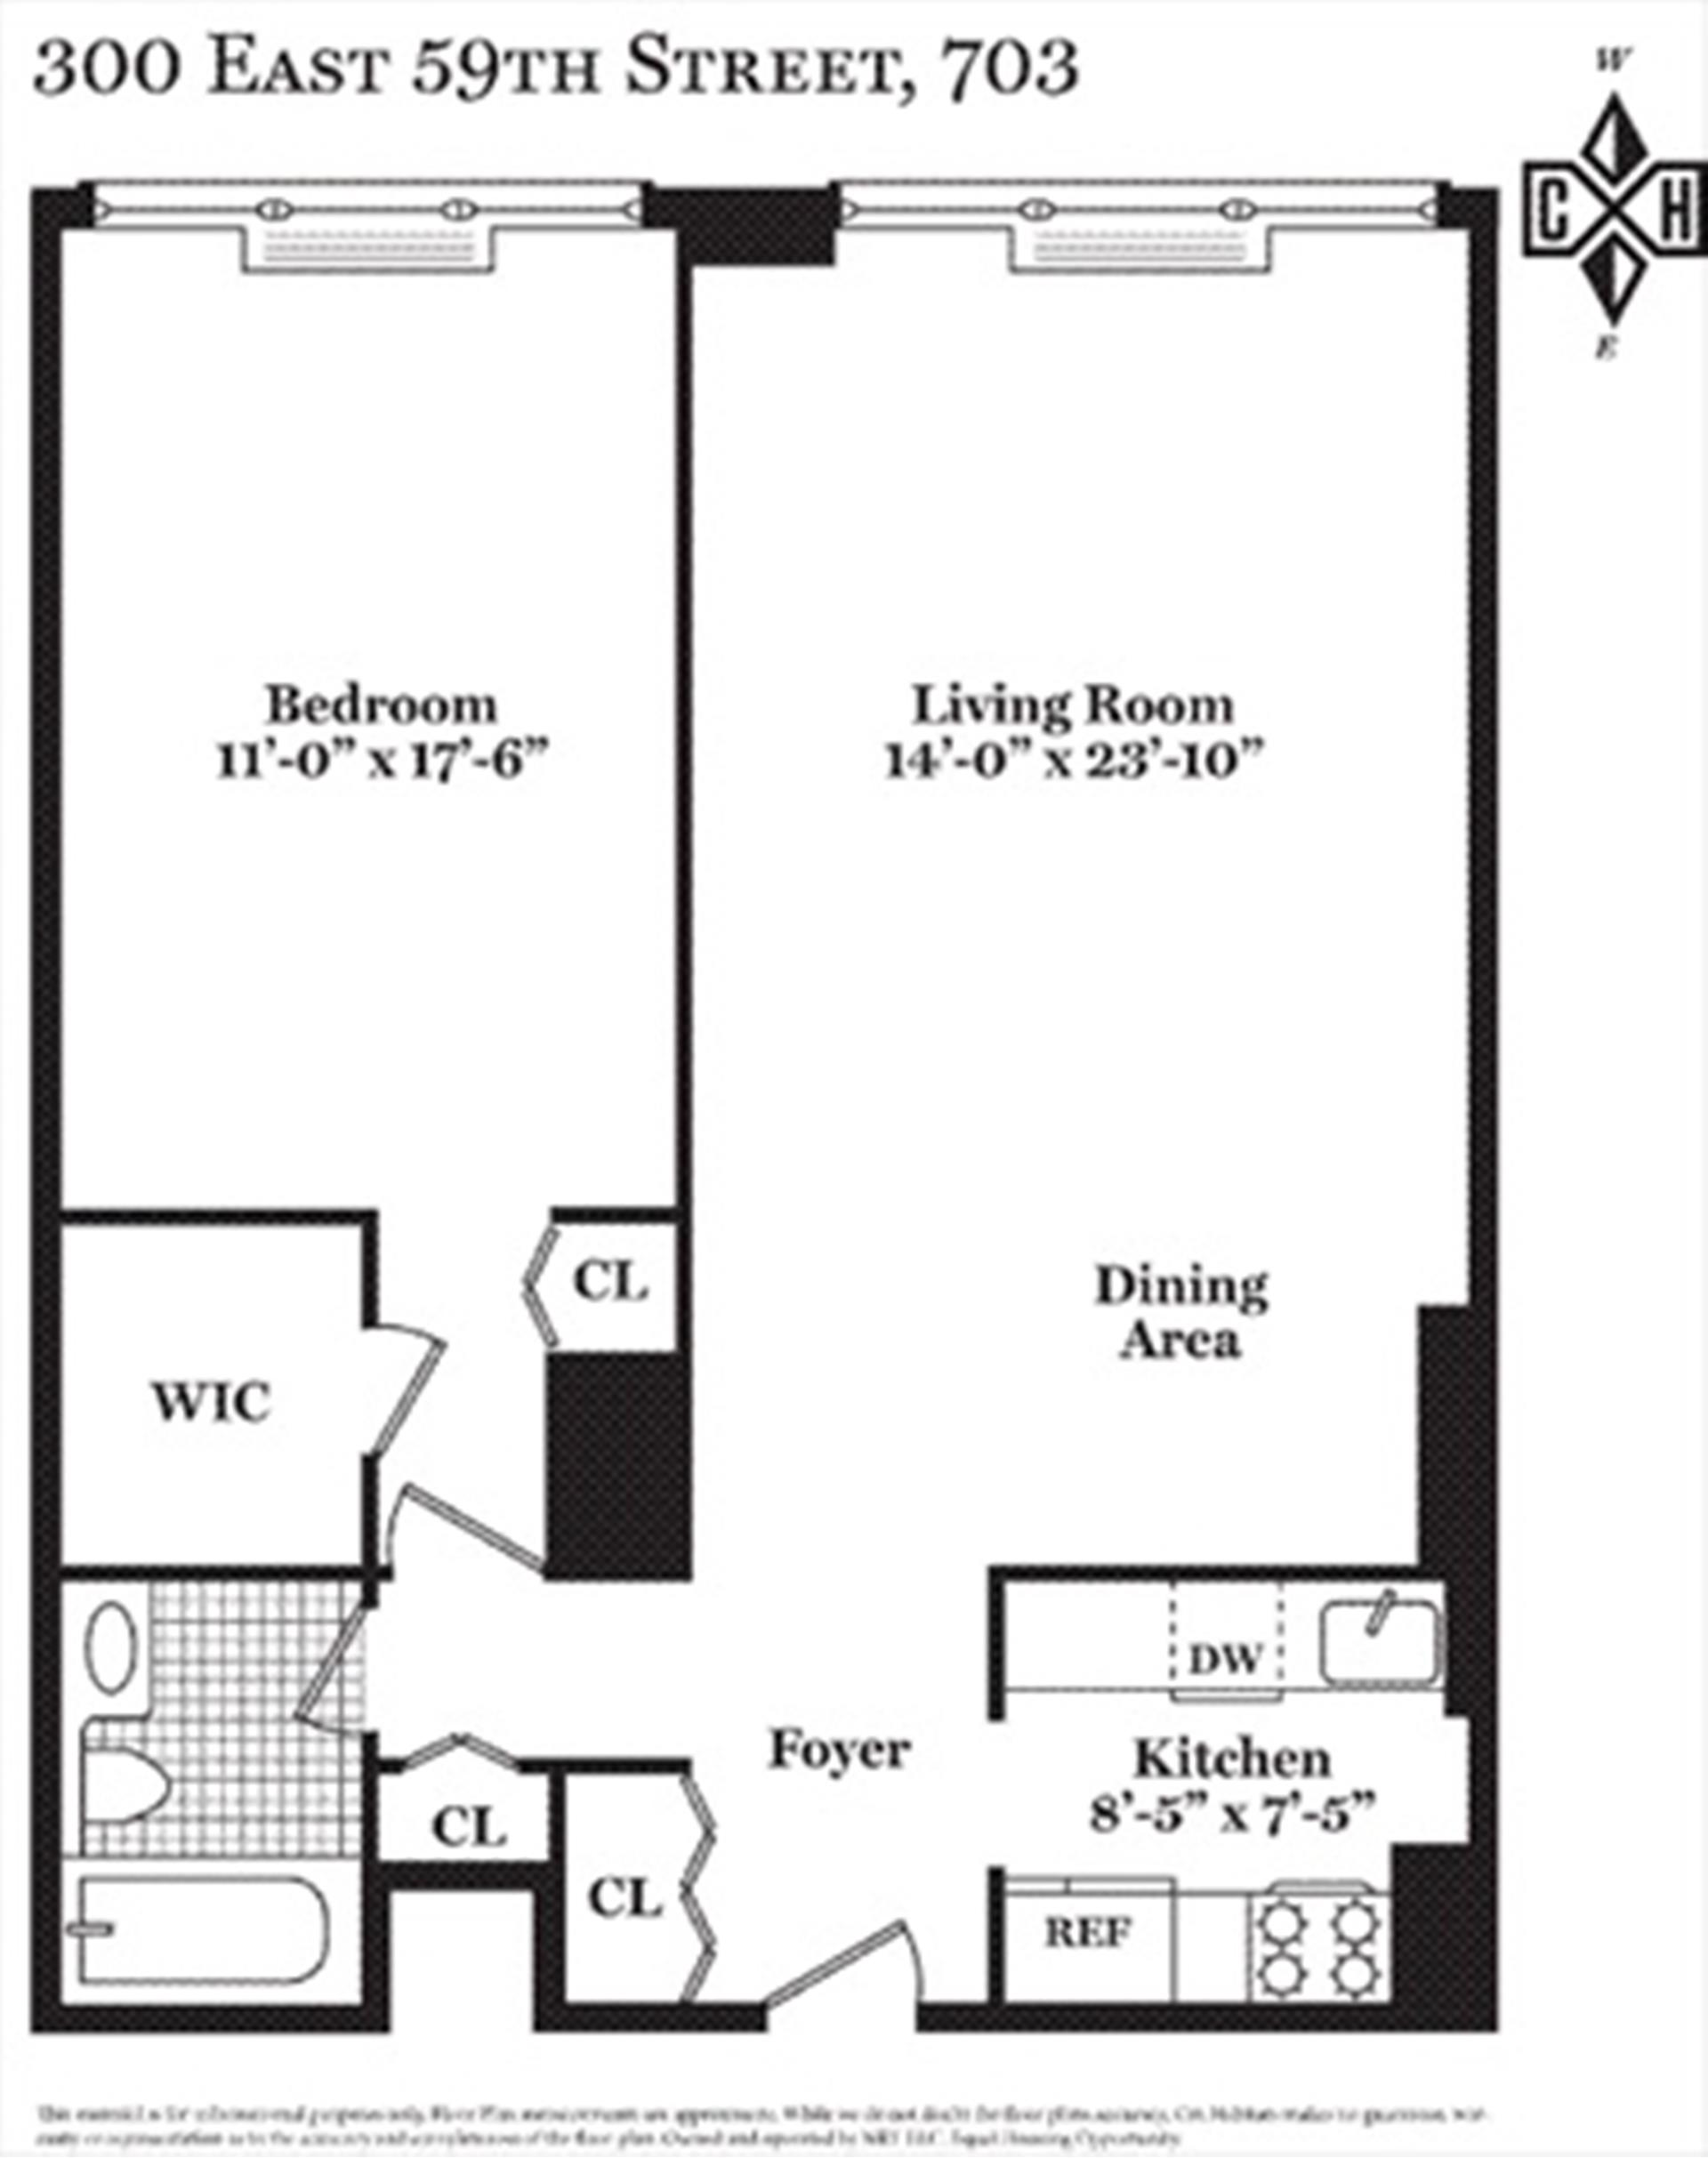 Floor plan of 300 East 59th St, 2603 - Upper East Side, New York